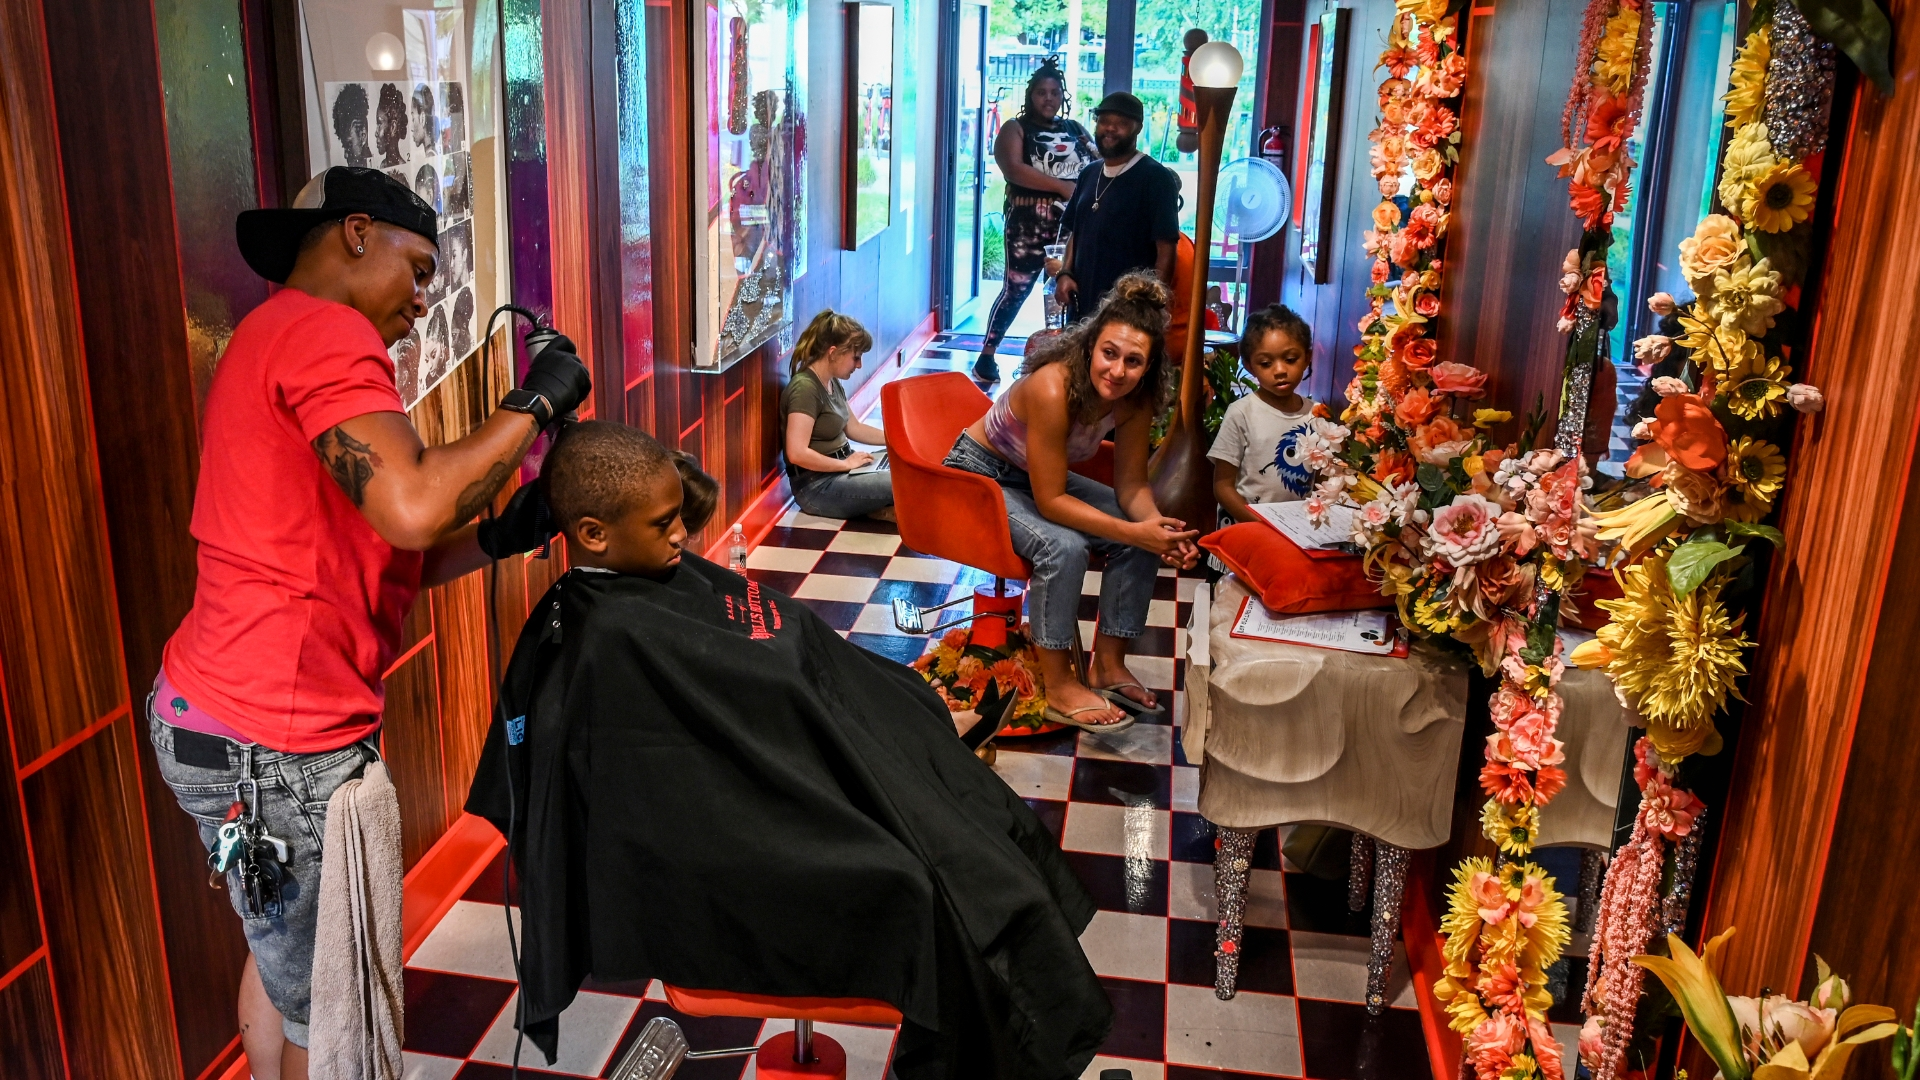 A D C  art gallery transforms itself into a barbershop to promote LGBTQ  tolerance